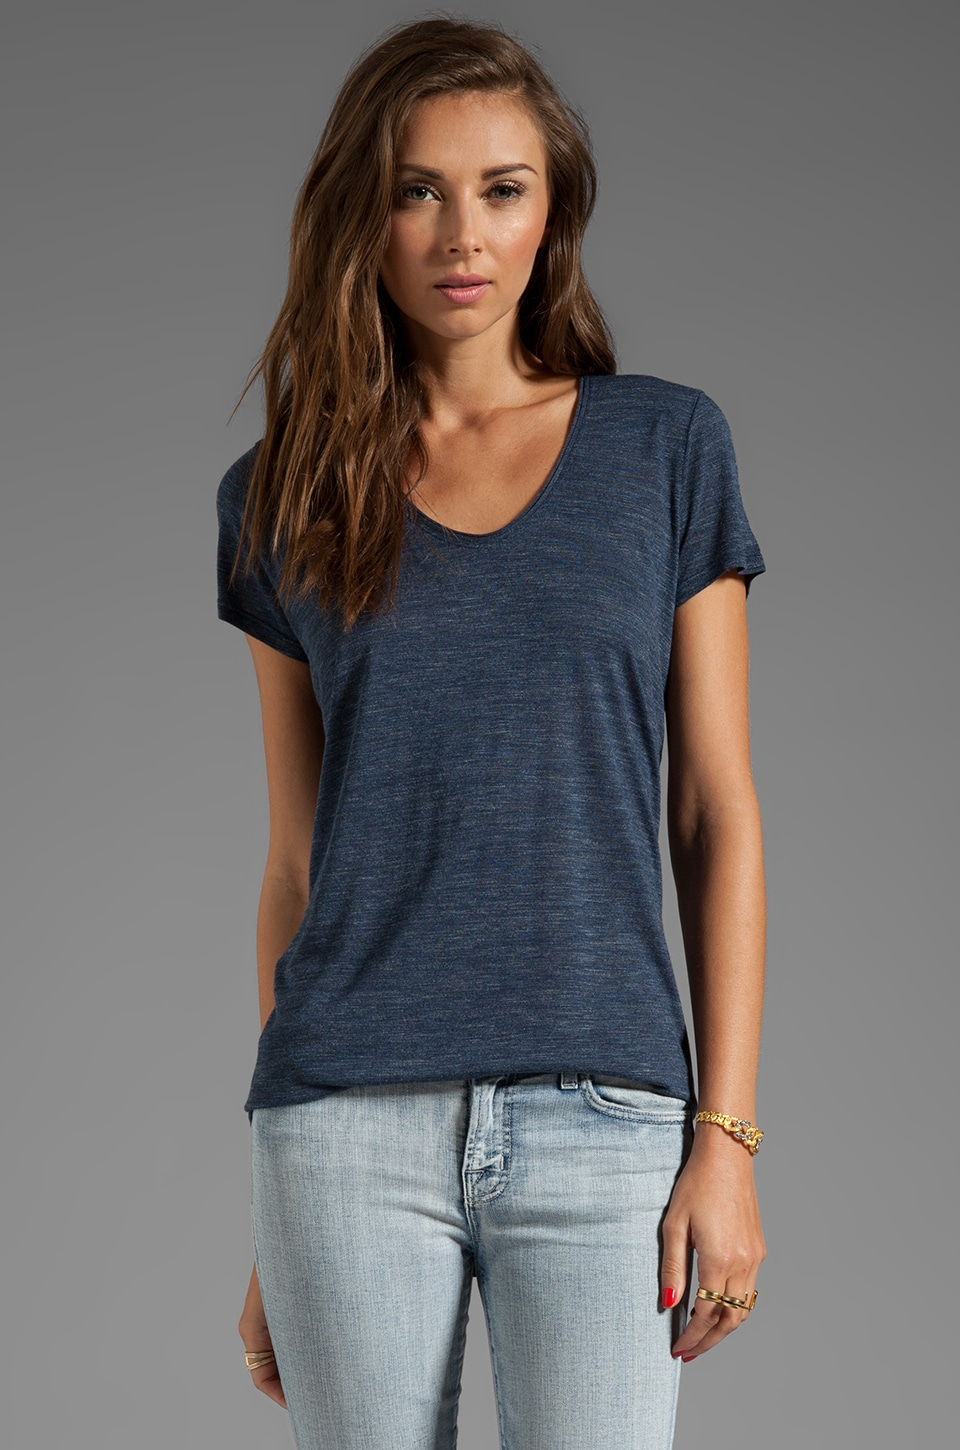 Vince Short Sleeve Rolled V-Neck Tee in Heather Coastal